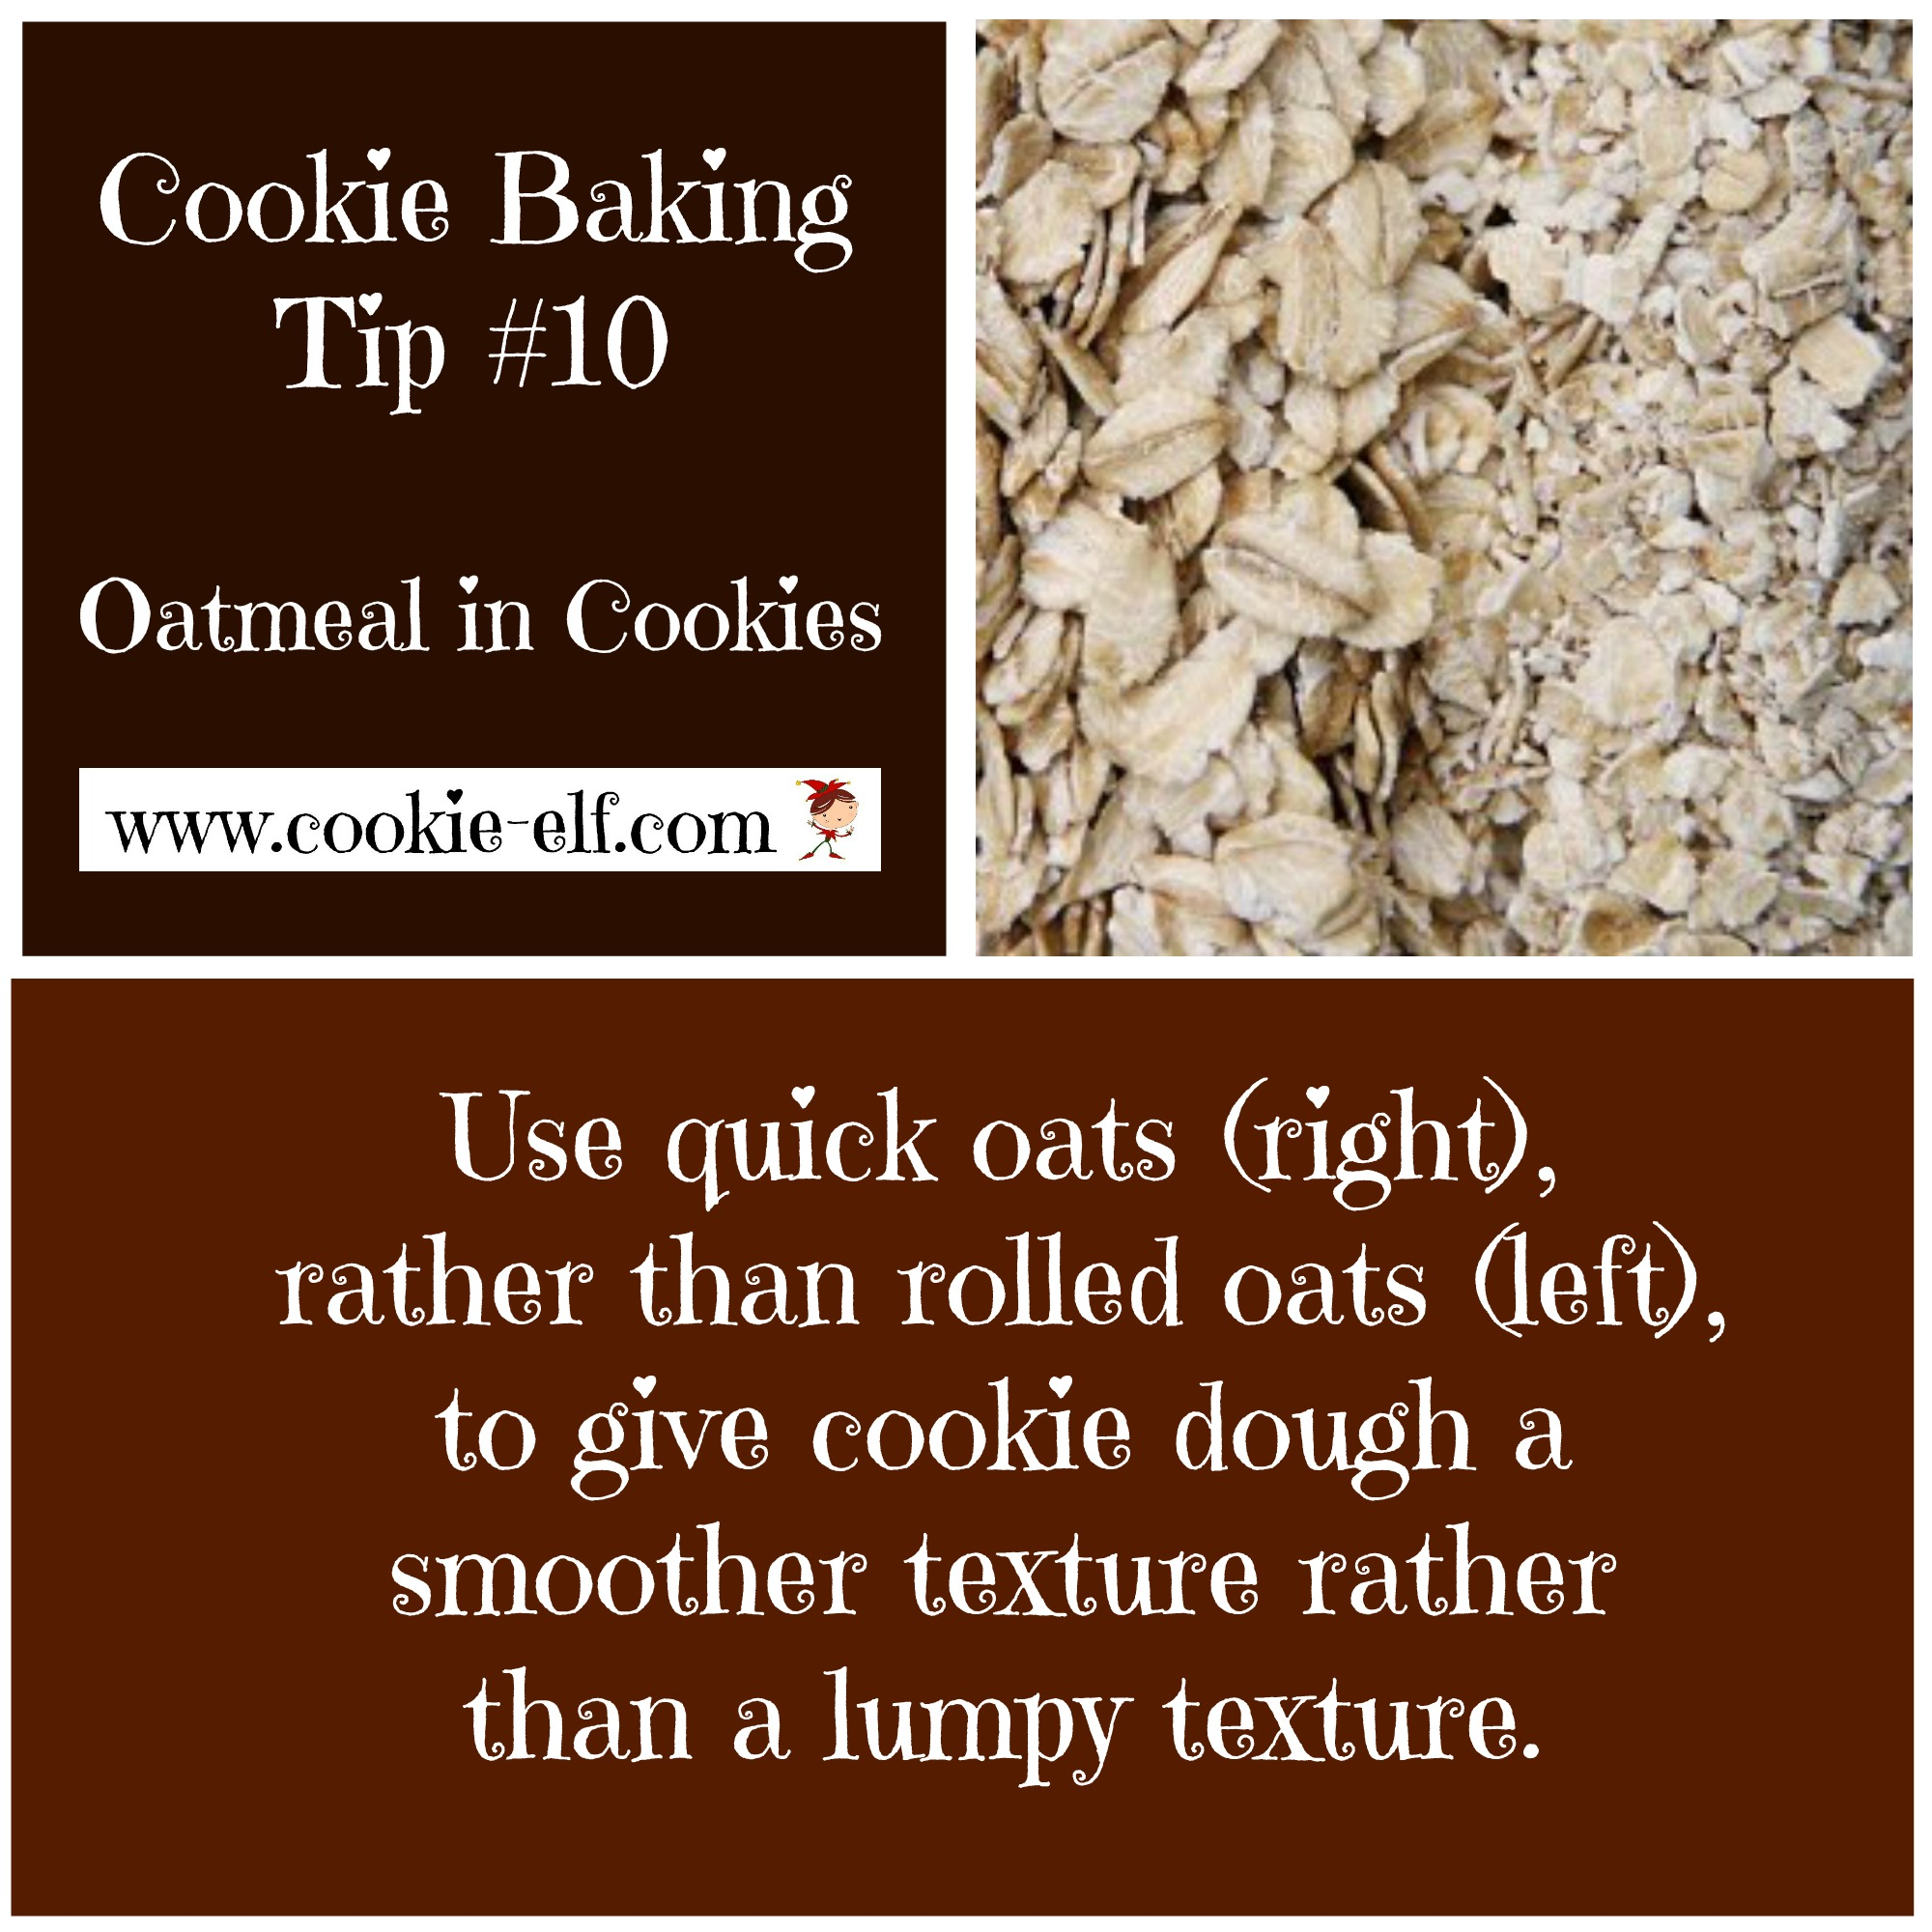 Cookie Baking Tip: oatmeal in cookie dough with The Cookie Elf